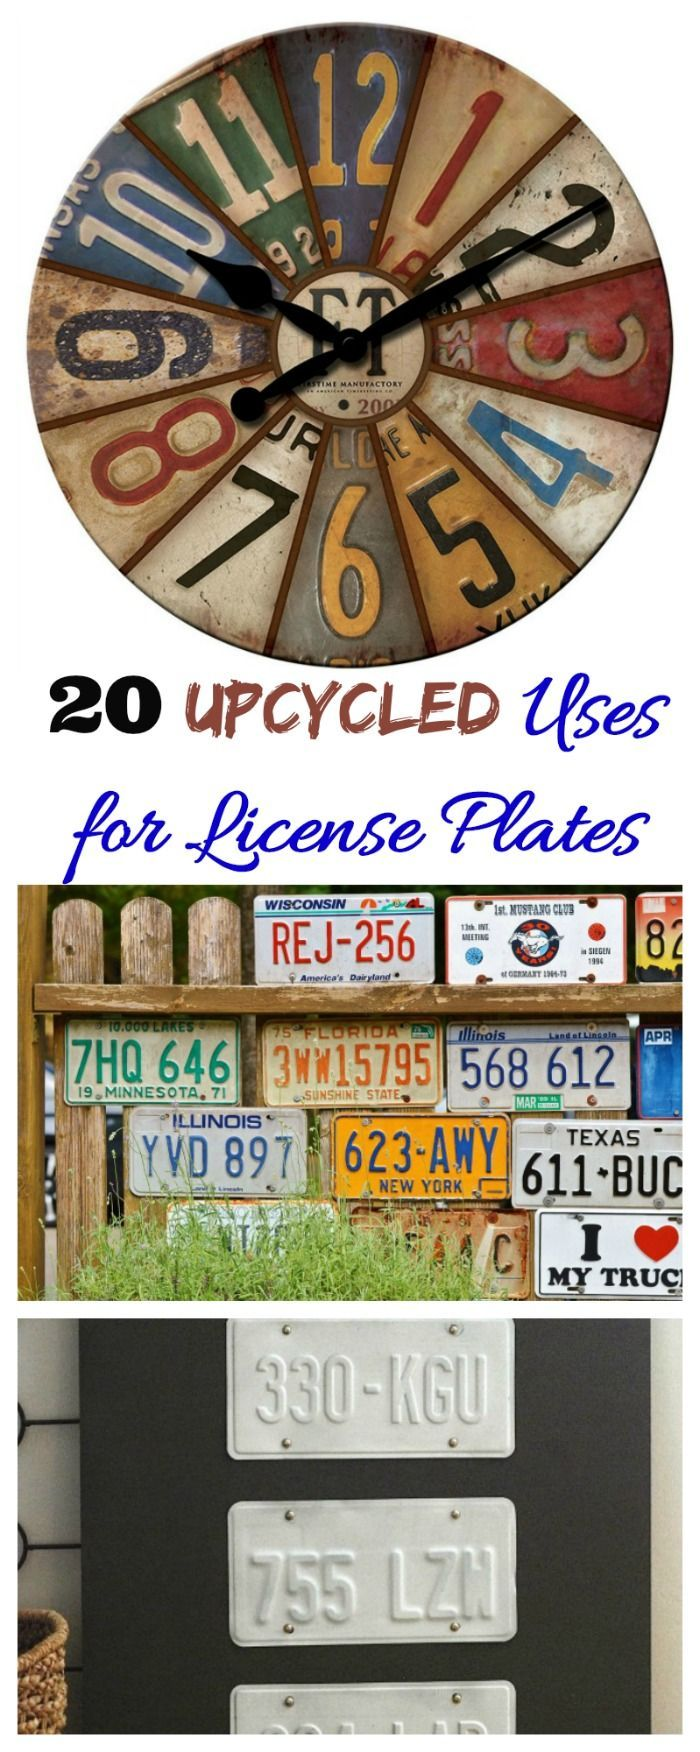 Best 25+ License plate renewal ideas on Pinterest | Plate mail ...